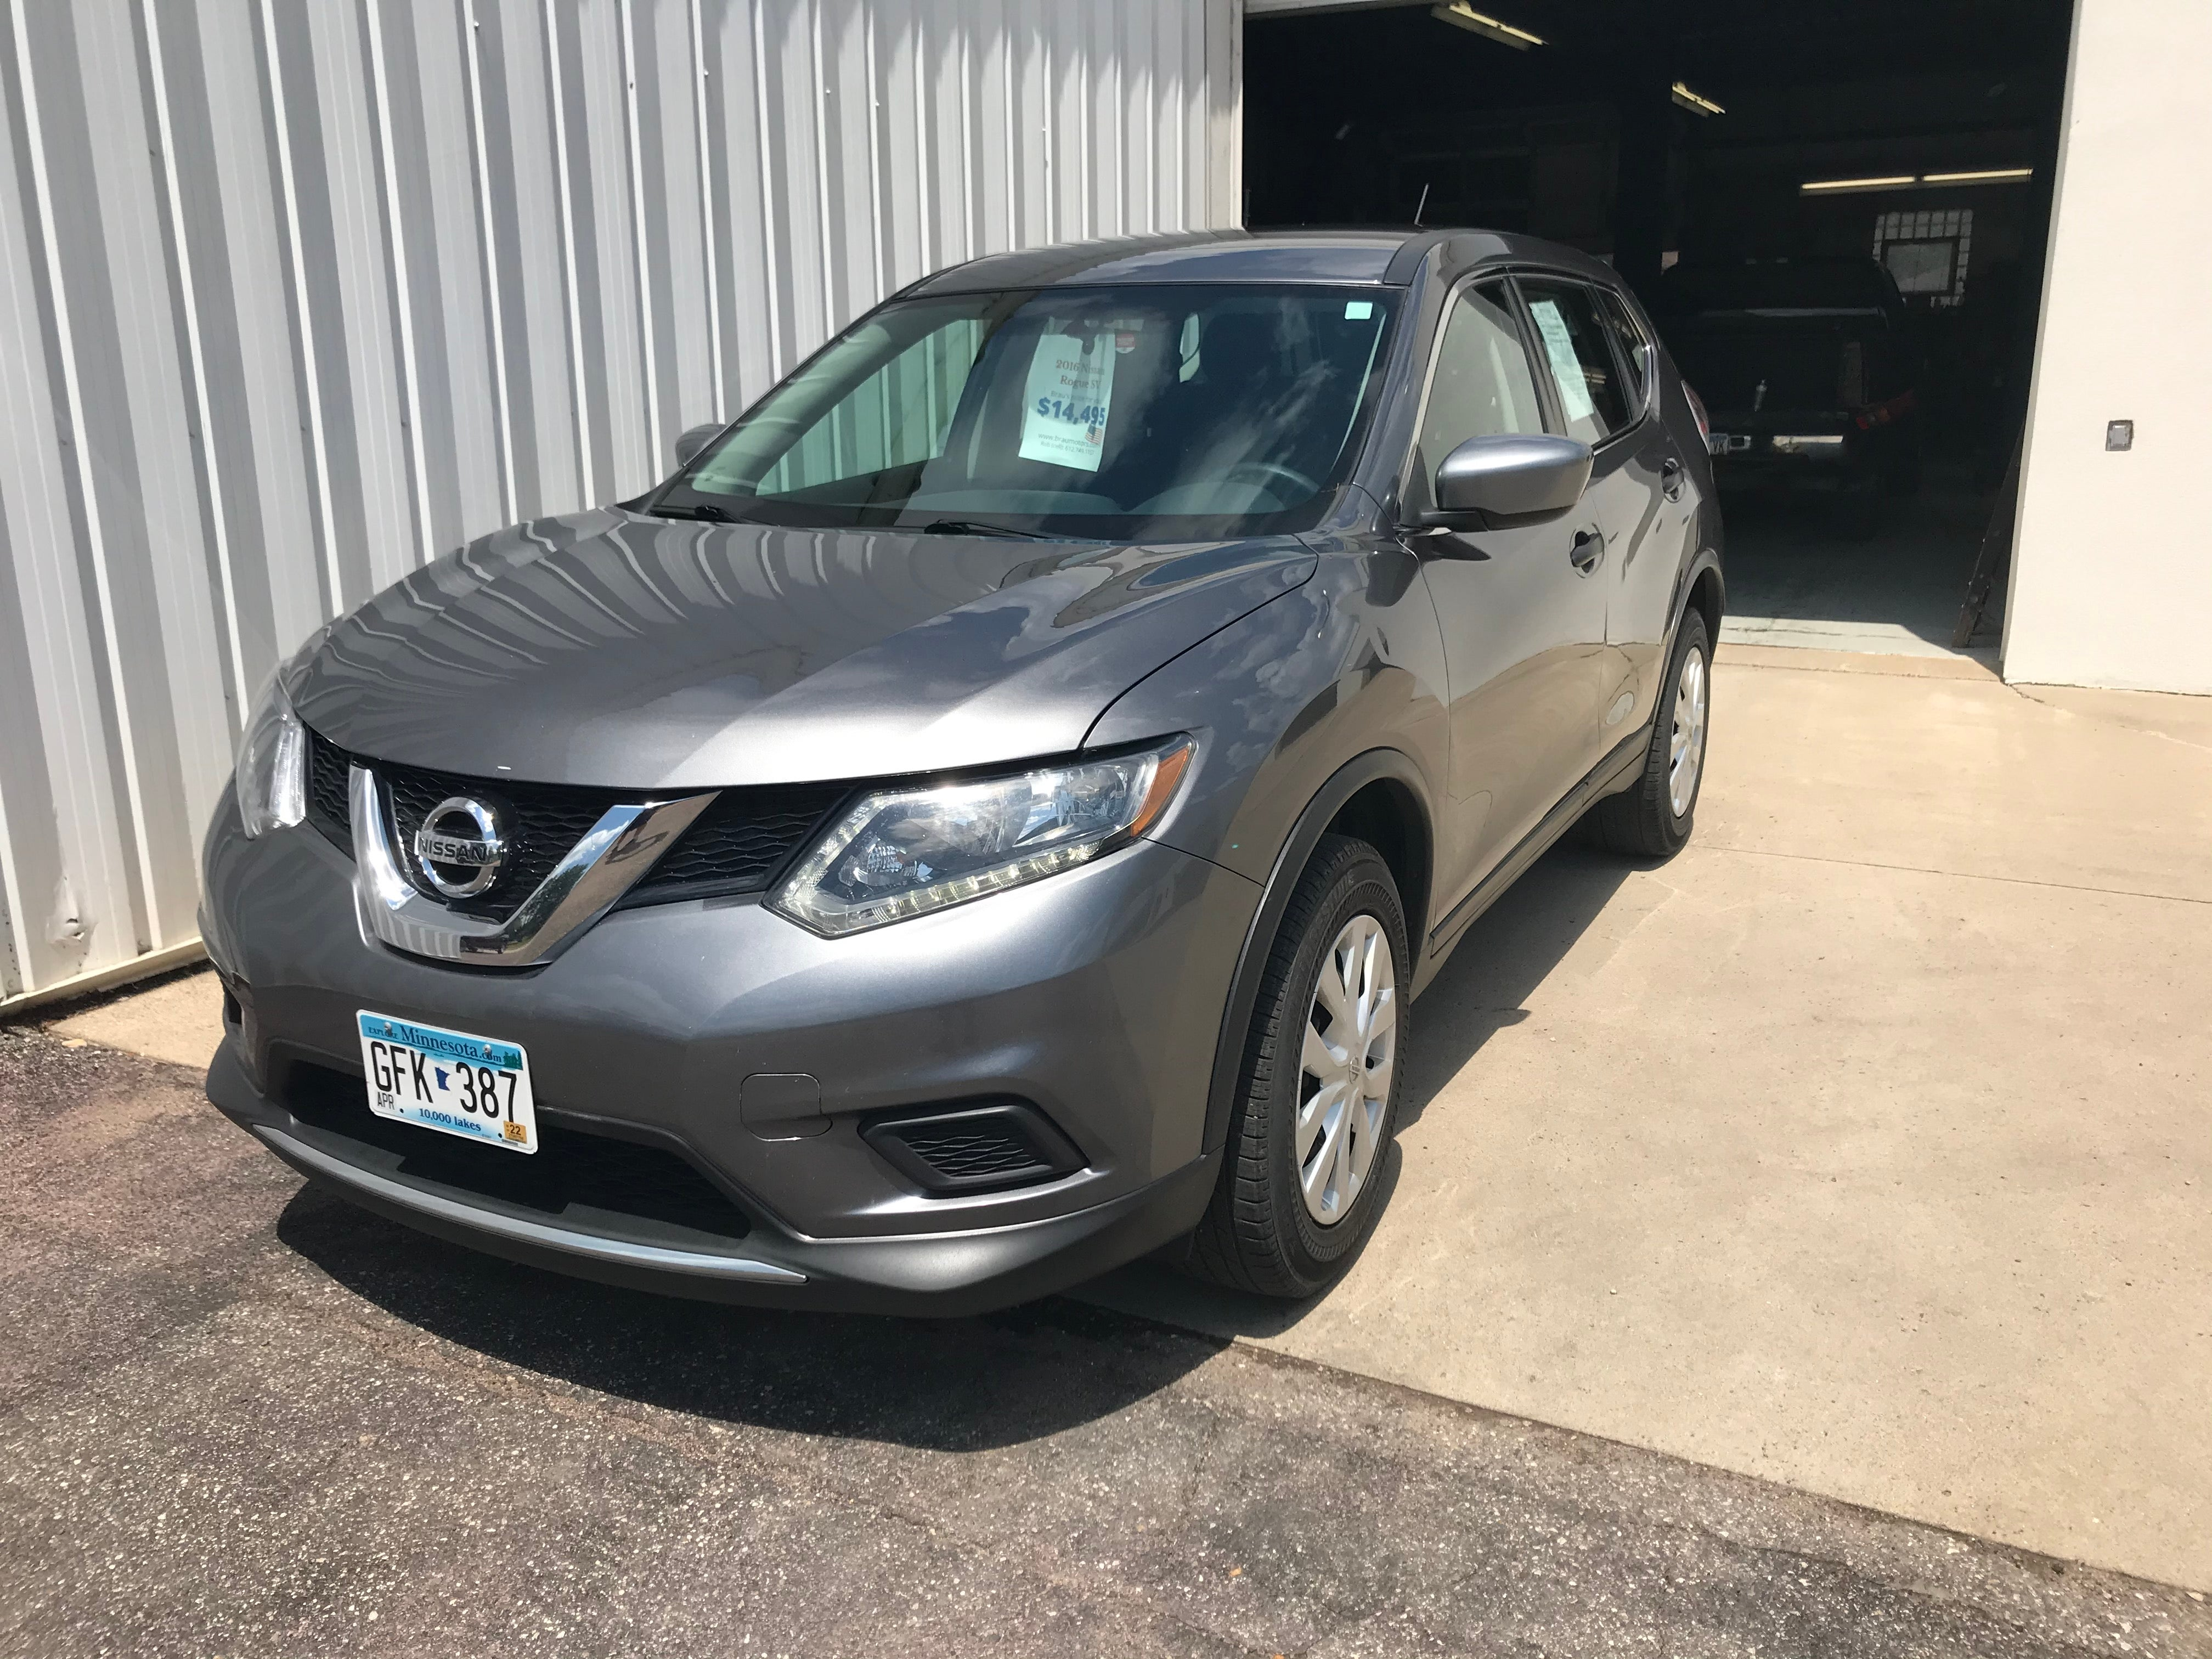 Used 2016 Nissan Rogue S with VIN KNMAT2MV2GP689781 for sale in Arlington, Minnesota